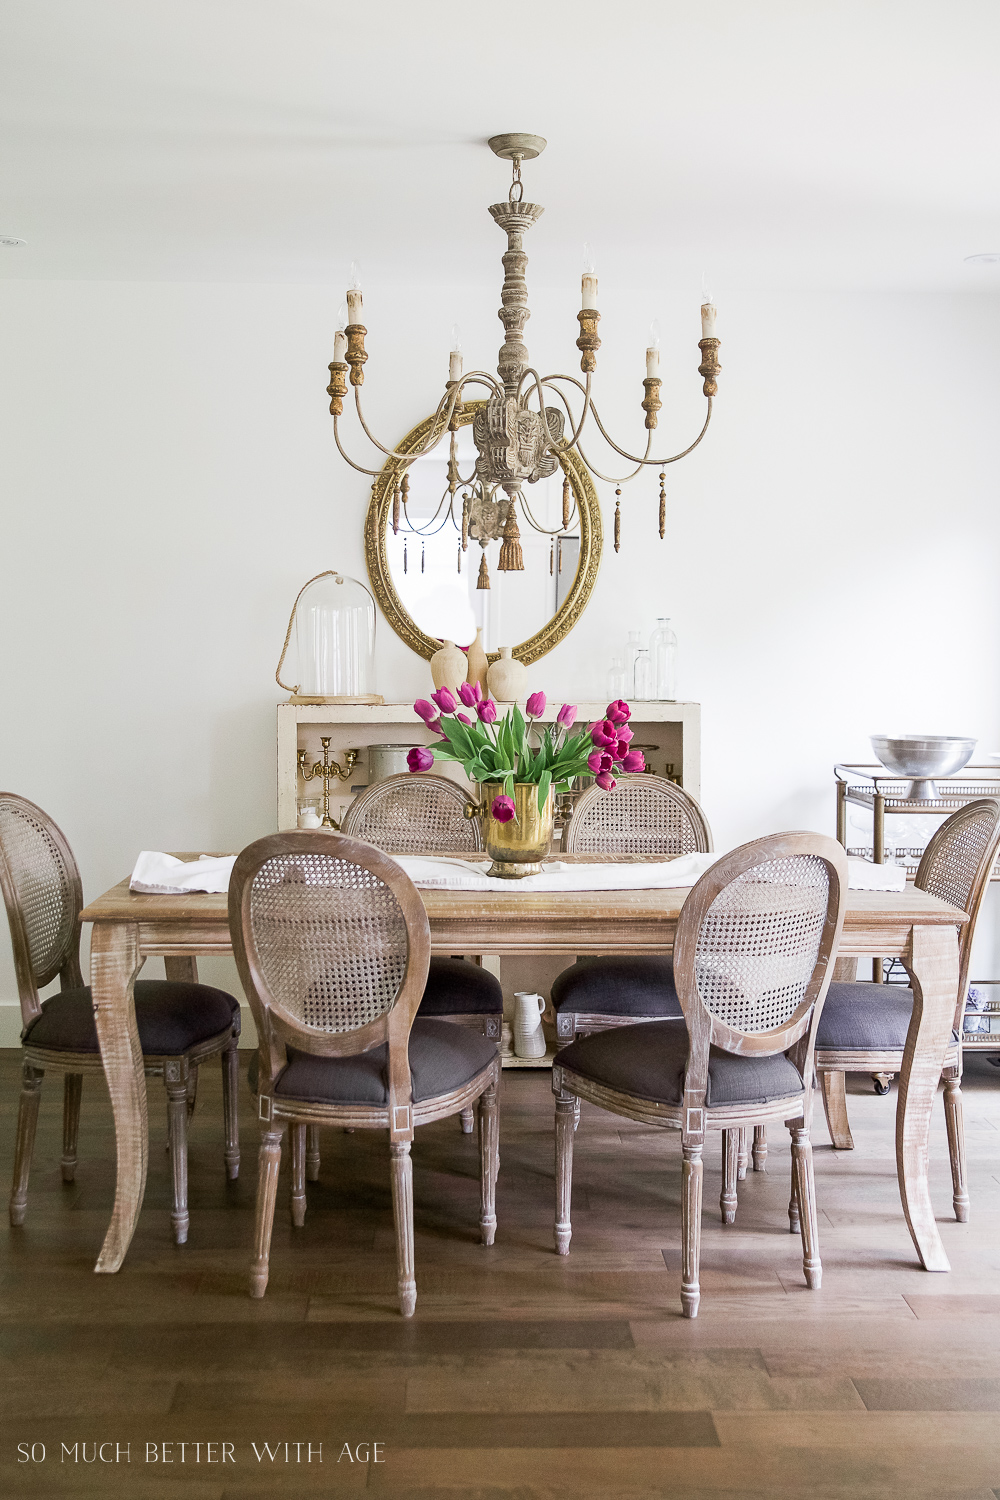 French Vintage Dining Room/cane dining chairs, chandelier - So Much Better With Age